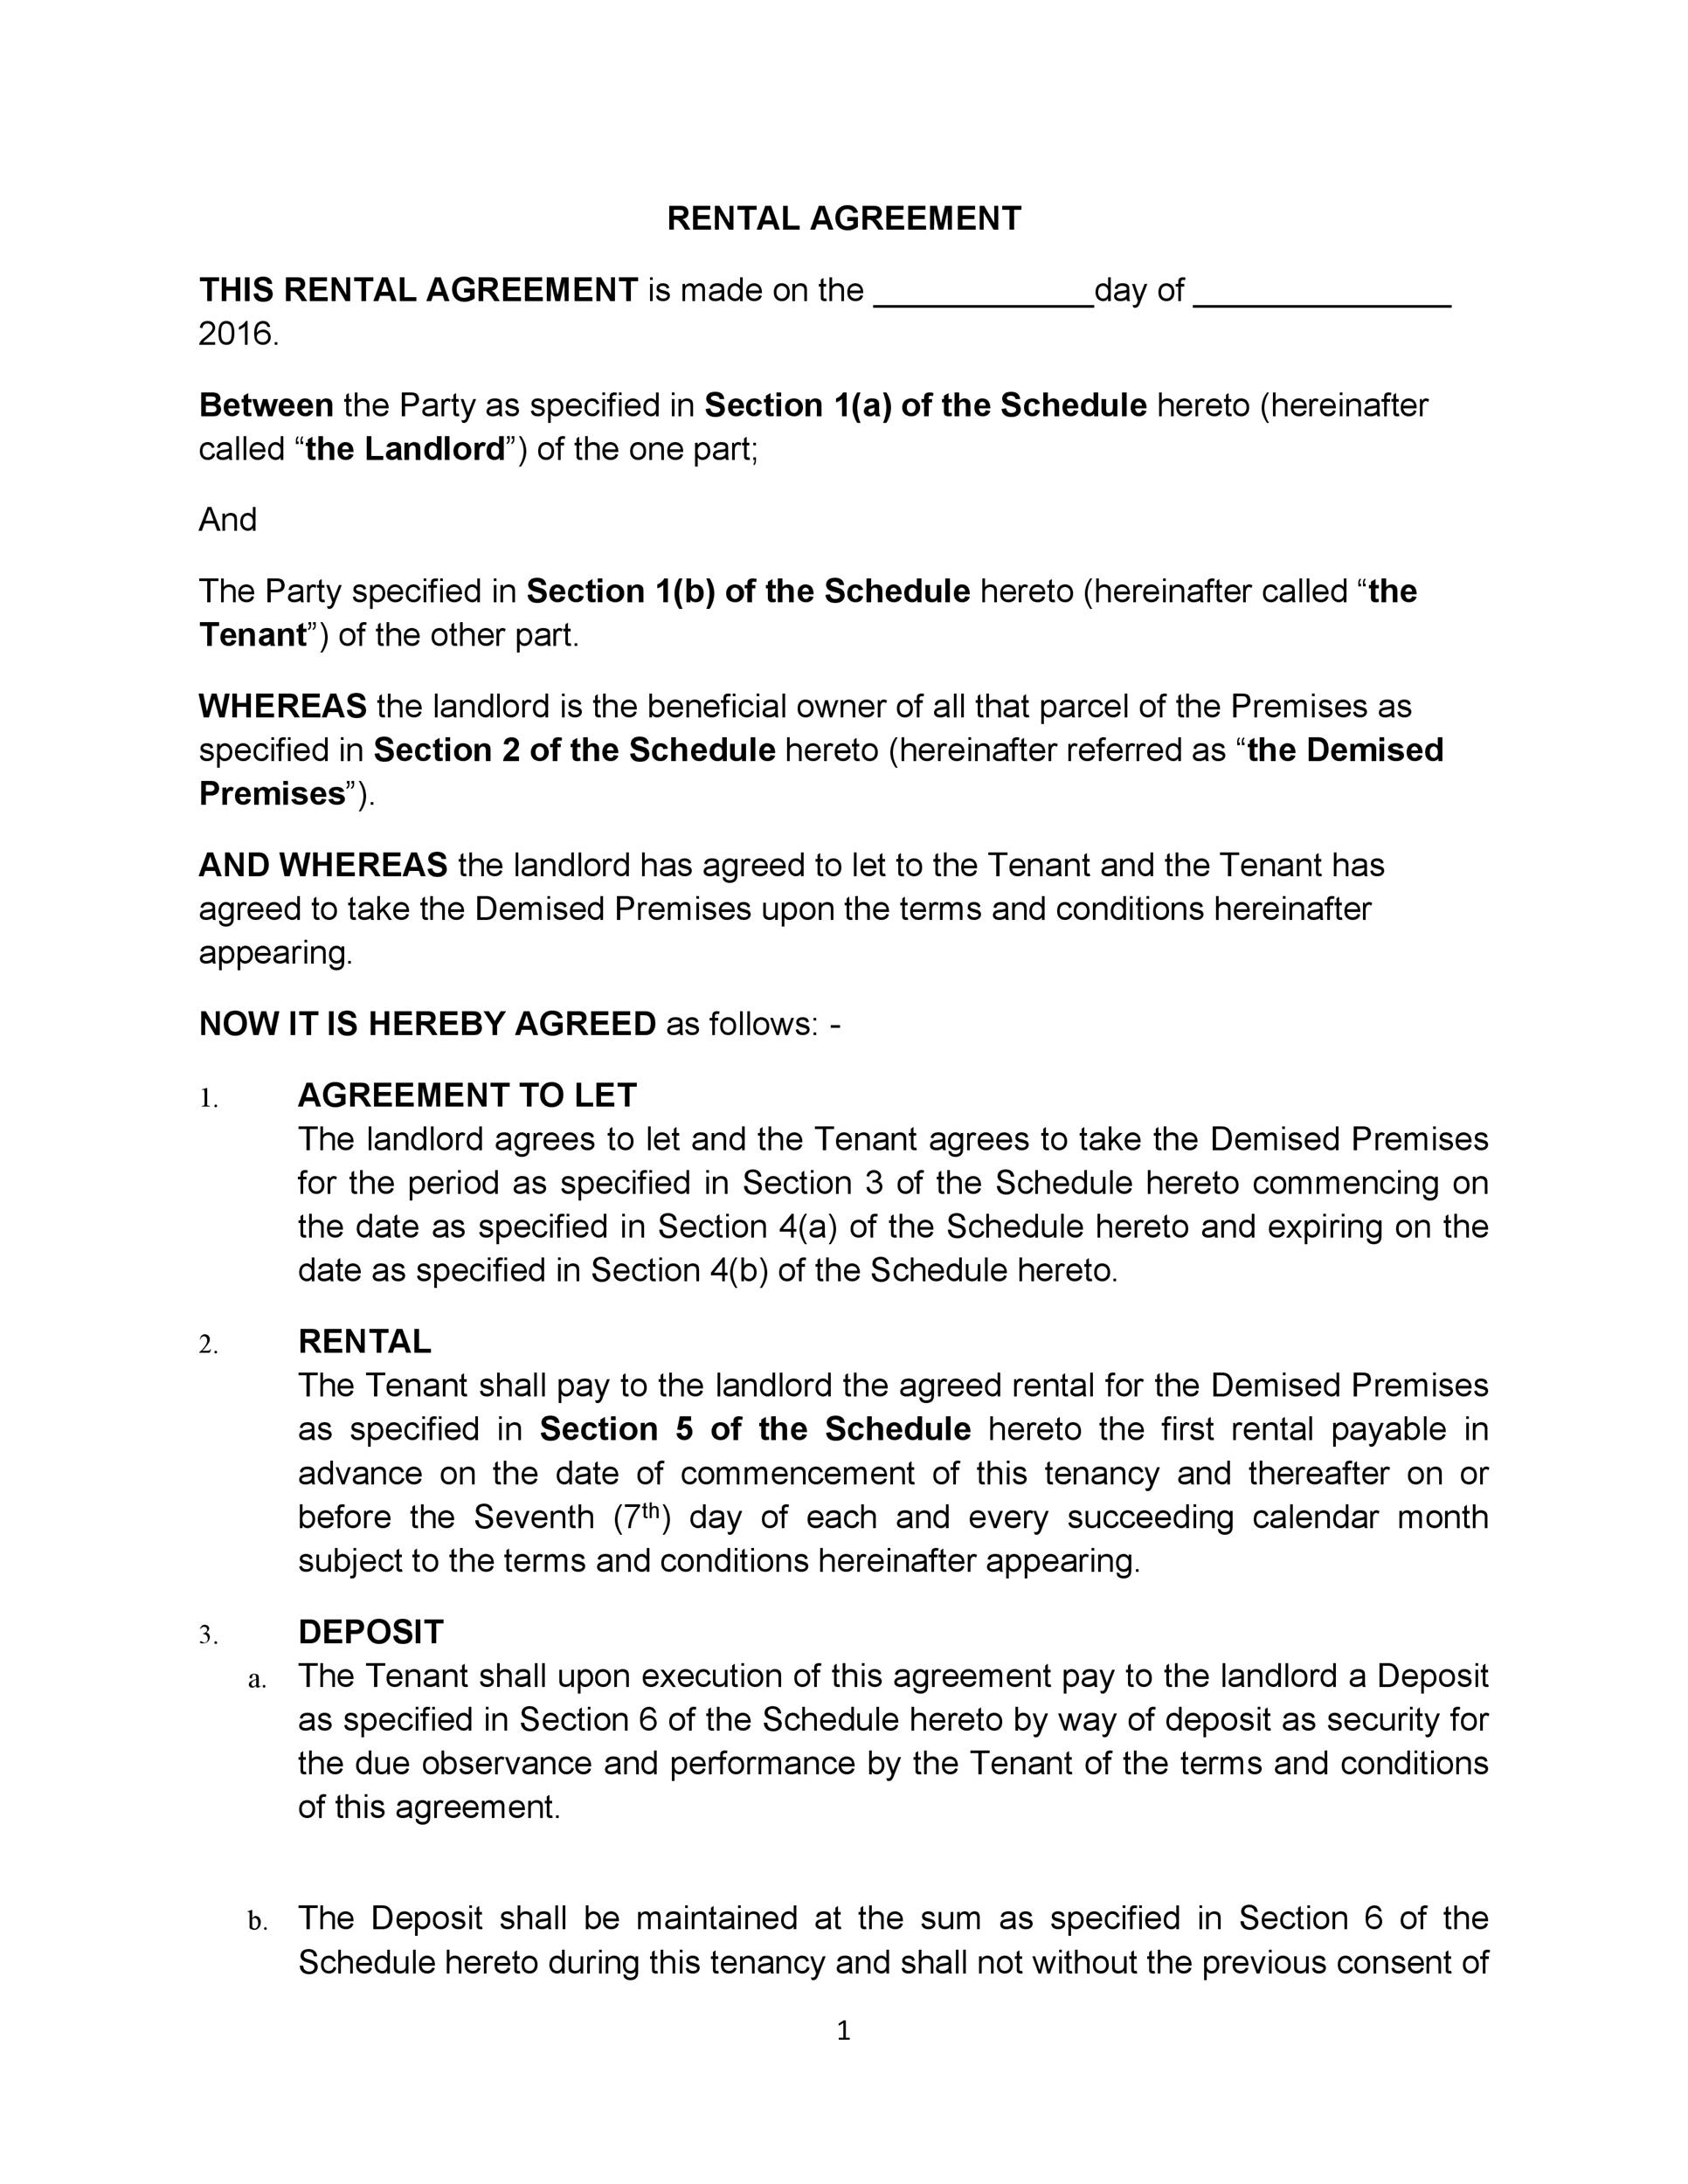 42 Rental Application Forms Lease Agreement Templates – Security Agreement Template